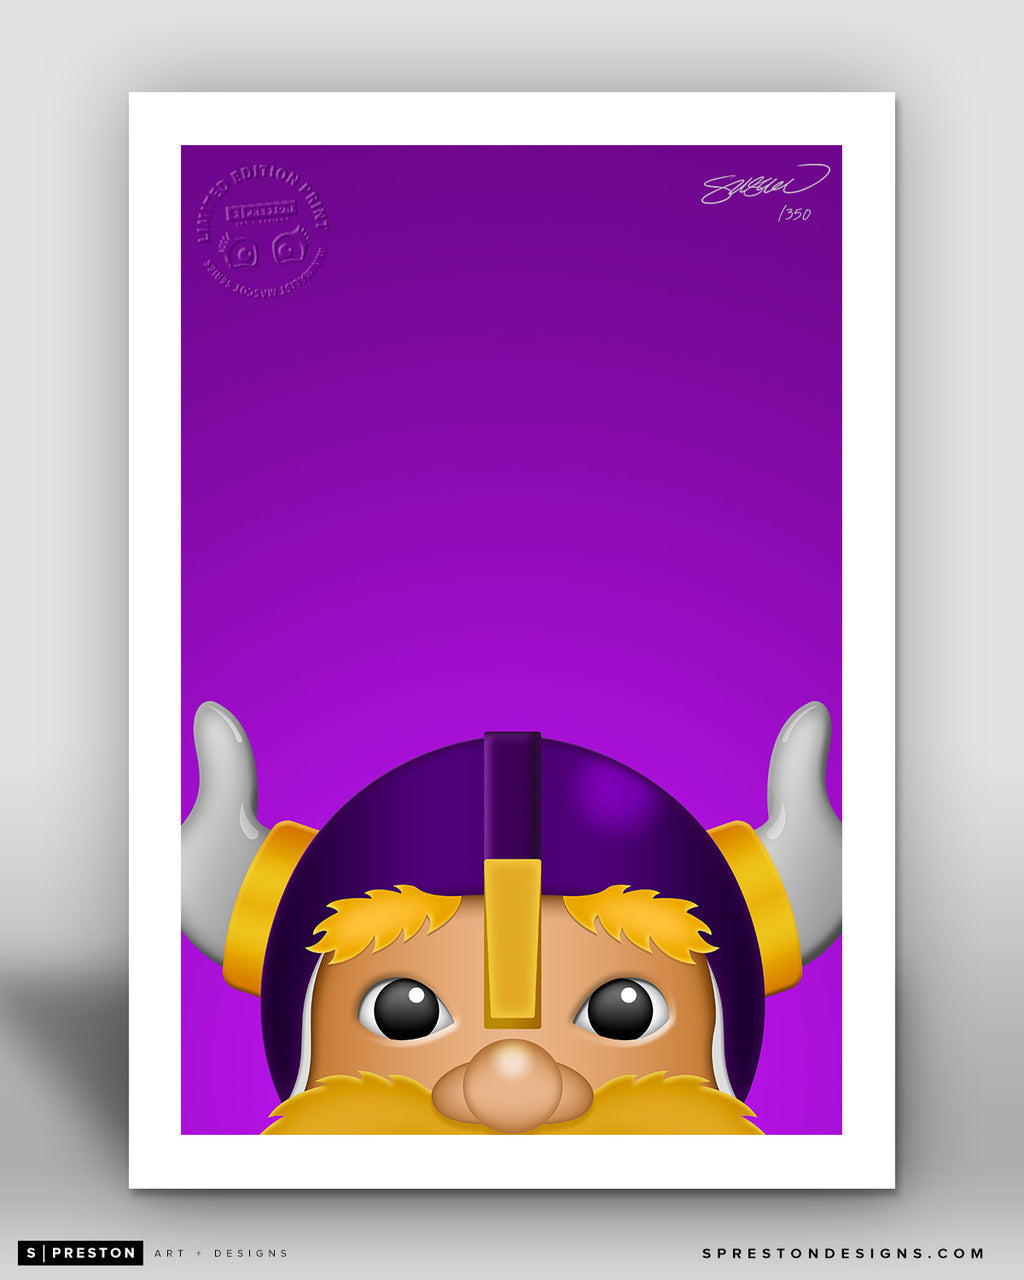 Minimalist Viktor The Viking Minnesota Vikings Mascot - S. Preston